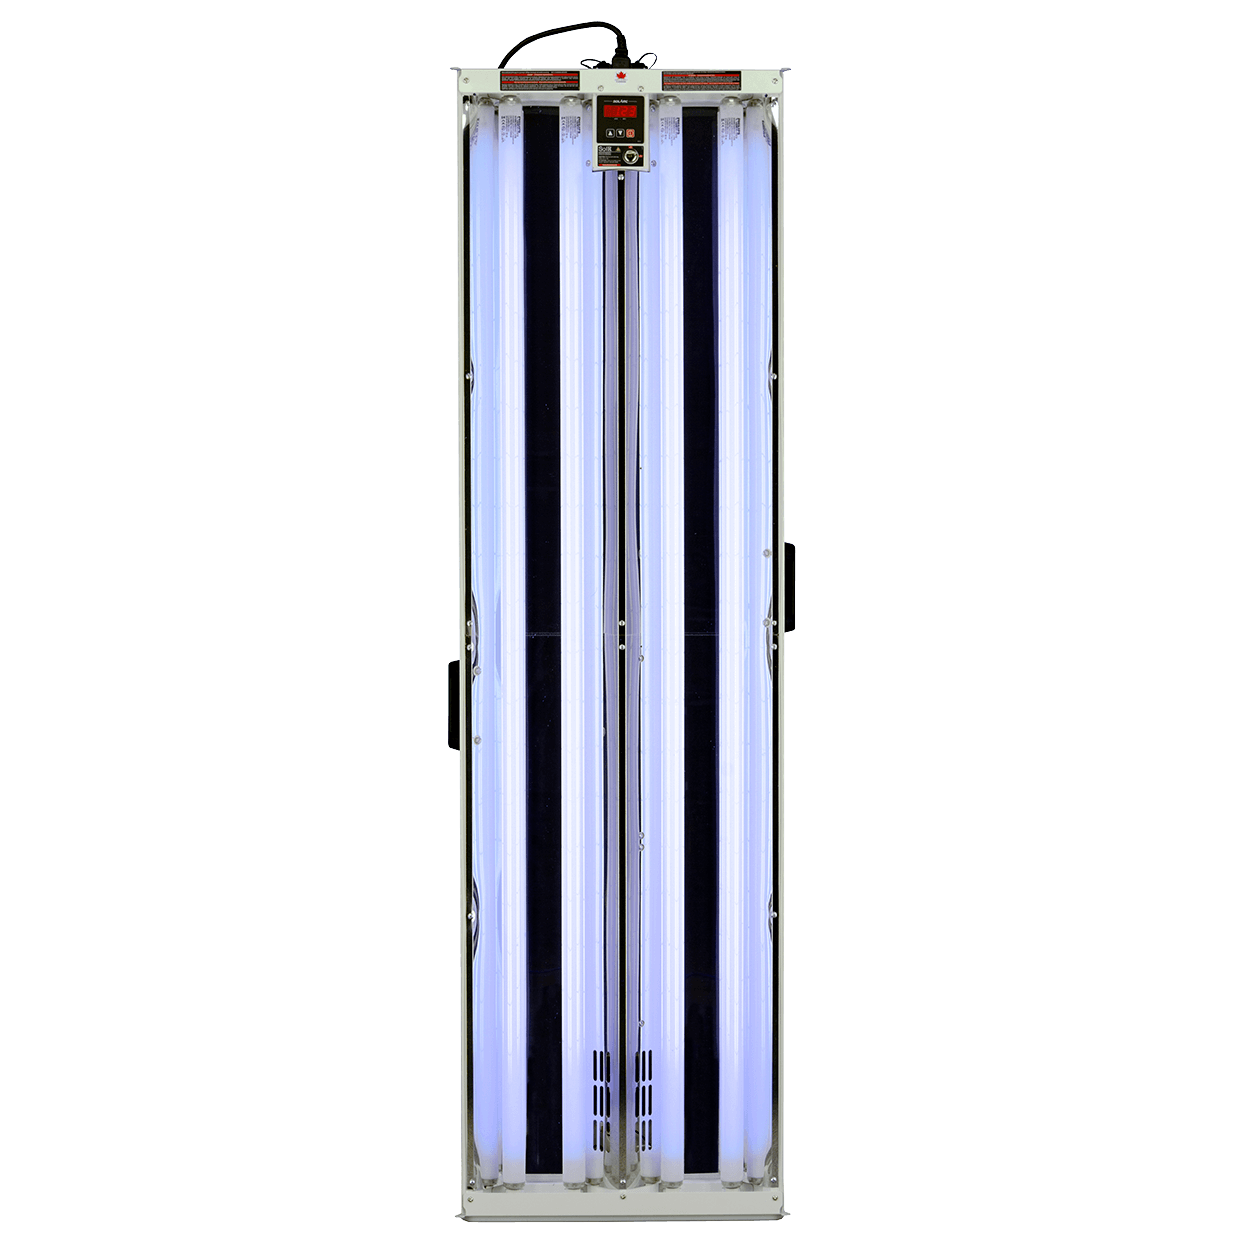 full product view of a SolRx E740 Master device with Clear Acrylic Window (CAW), home UVB-Narrowband Phototherapy